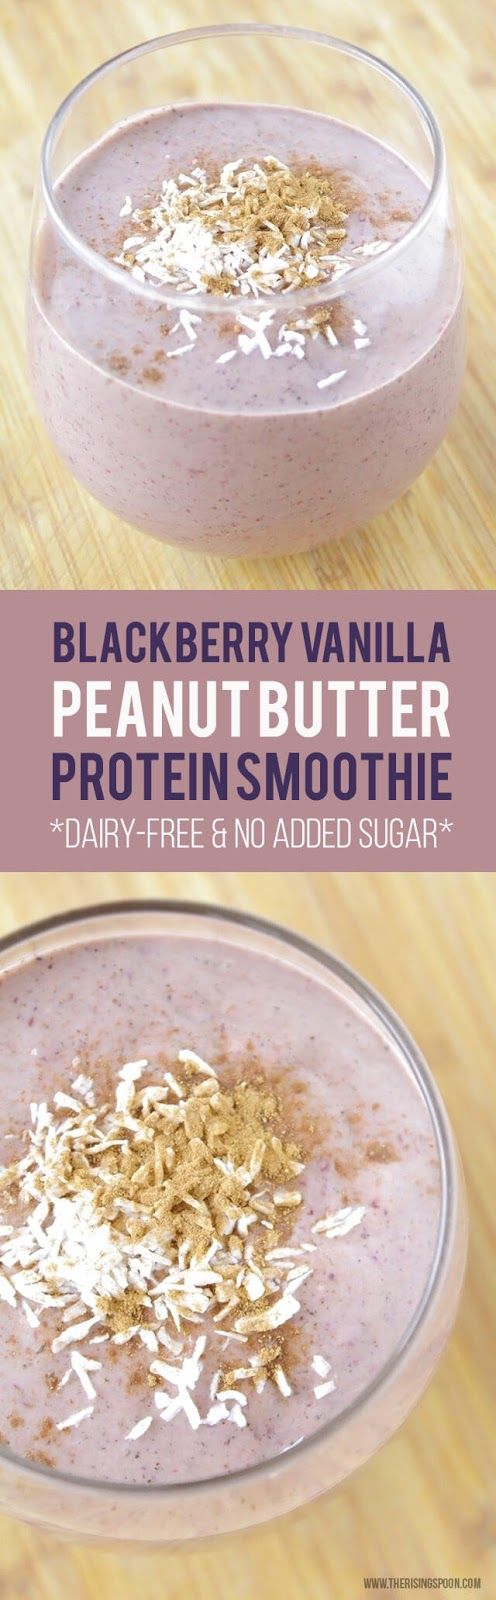 Healthy Blackberry Peanut Butter Protein Smoothie   Dairy-Free   No Added Sugar   Real Food Recipes   (Note: To  make this Whole30 approved, use a clean protein powder & sub almond butter.)